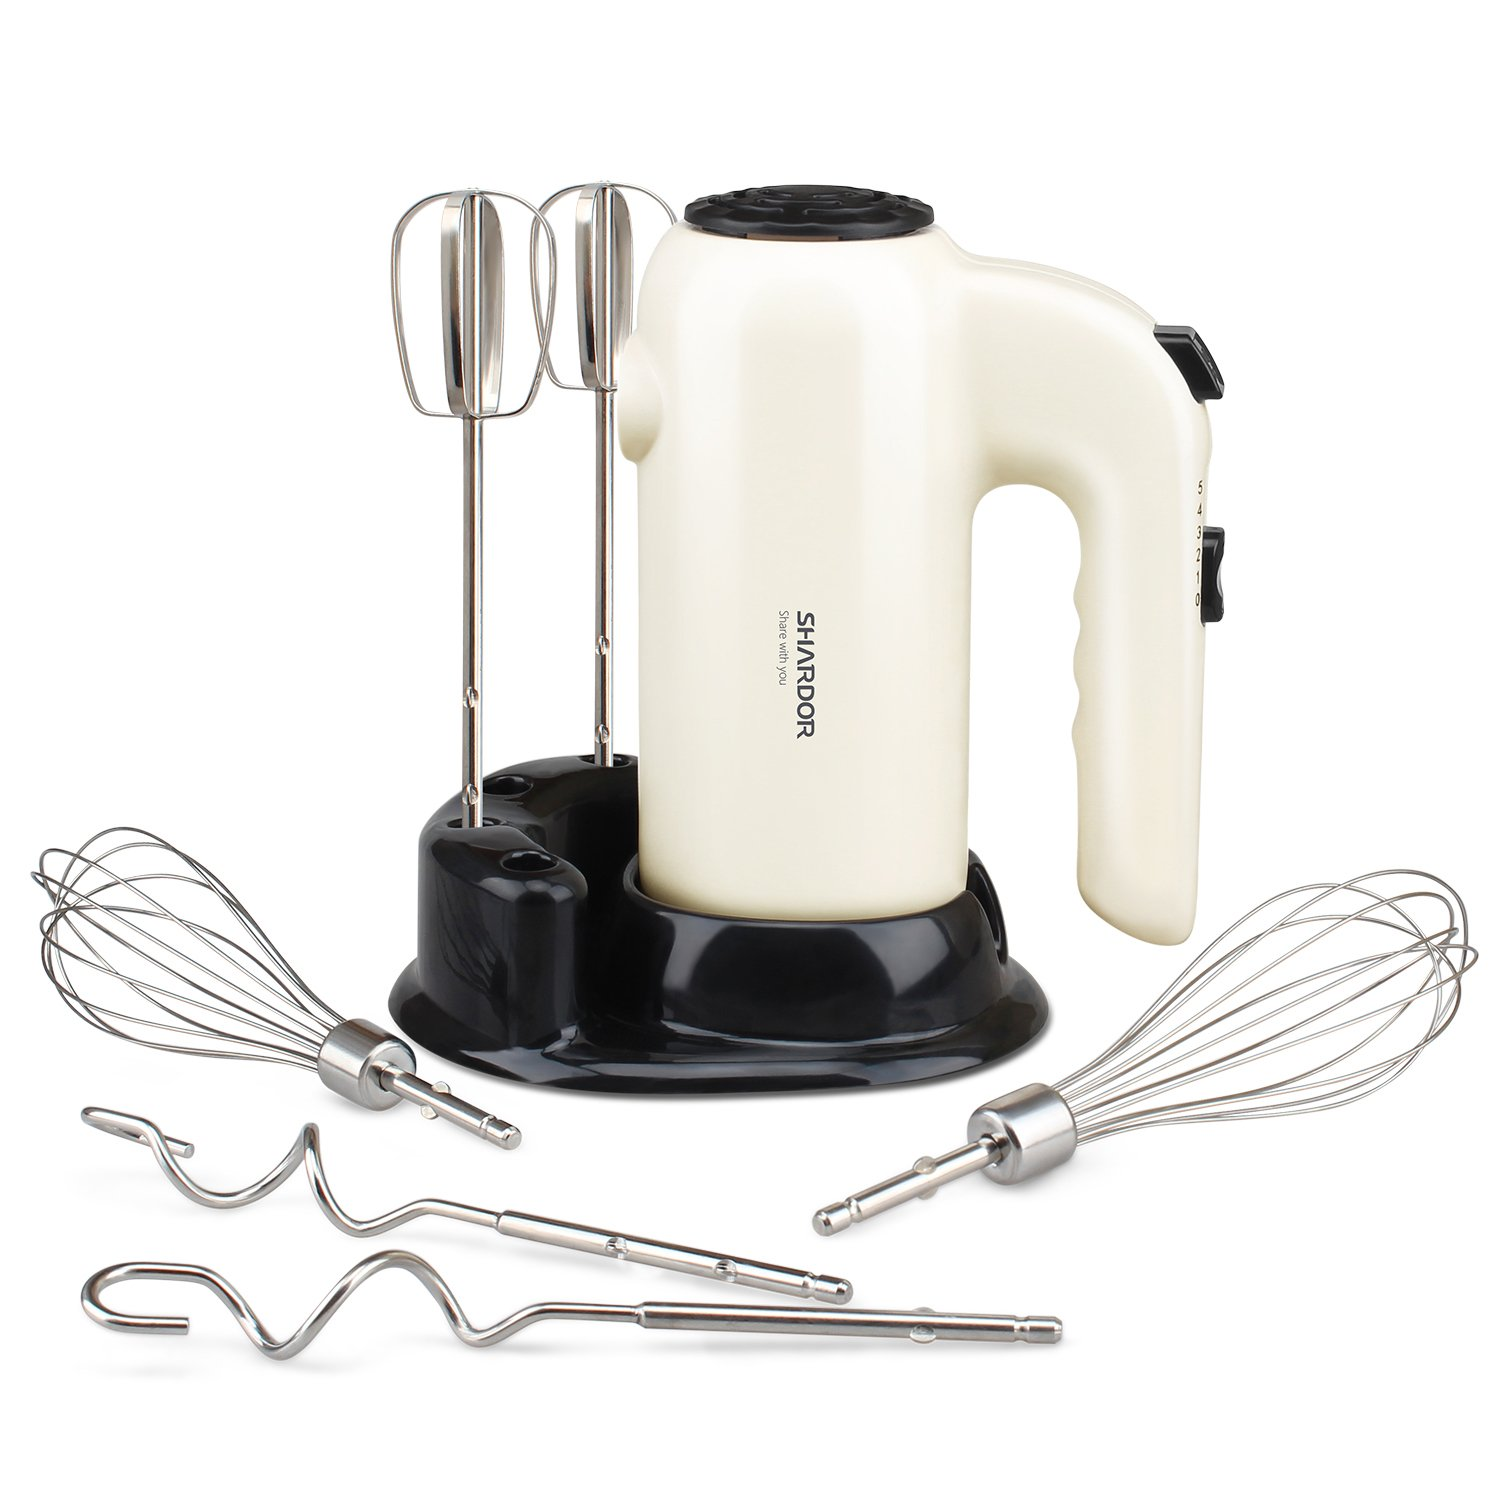 Hand Mixer Electric SHARDOR Ultra Power Mixer with 6 Stainless Steel Attachment & Storage Base, Eject Button, Digital Handheld Kitchen Mixer, White Black